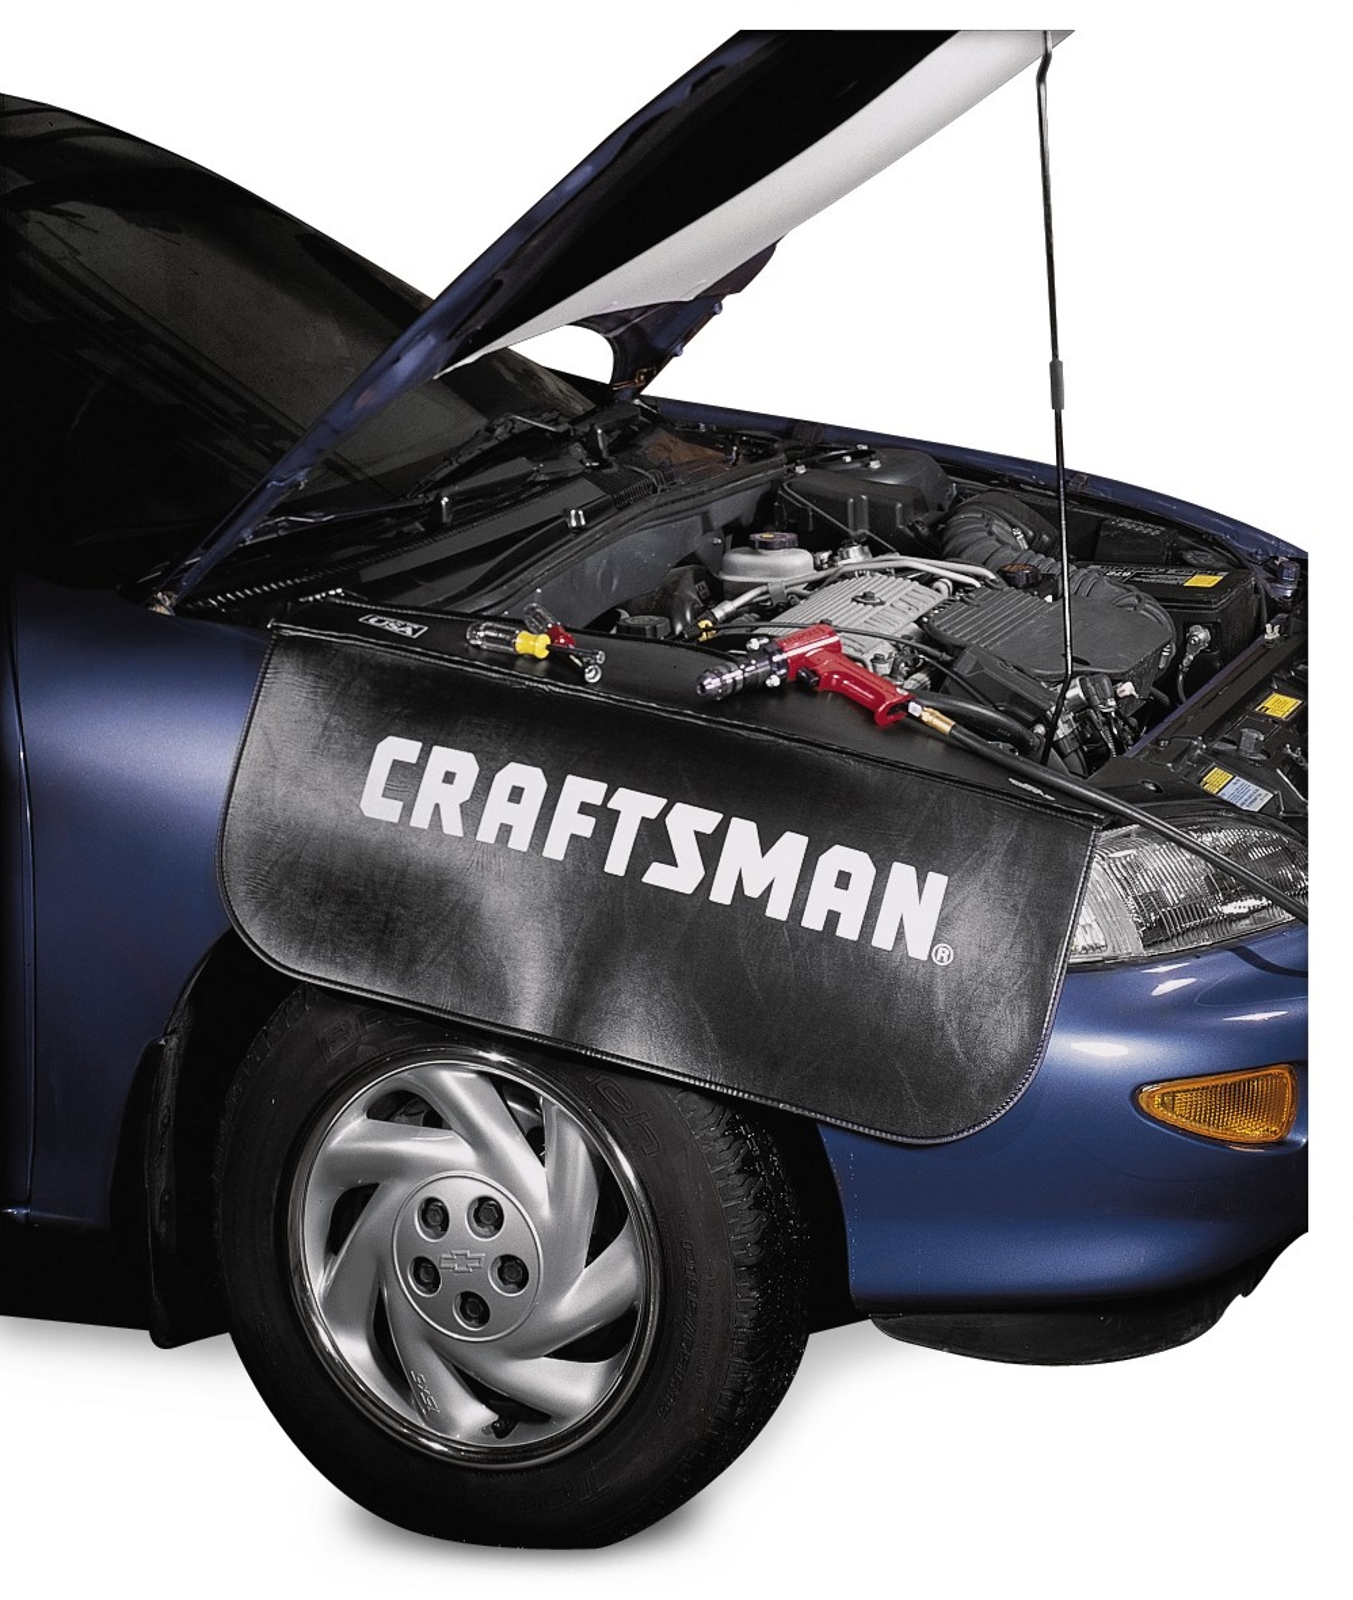 Craftsman Black Fender Cover